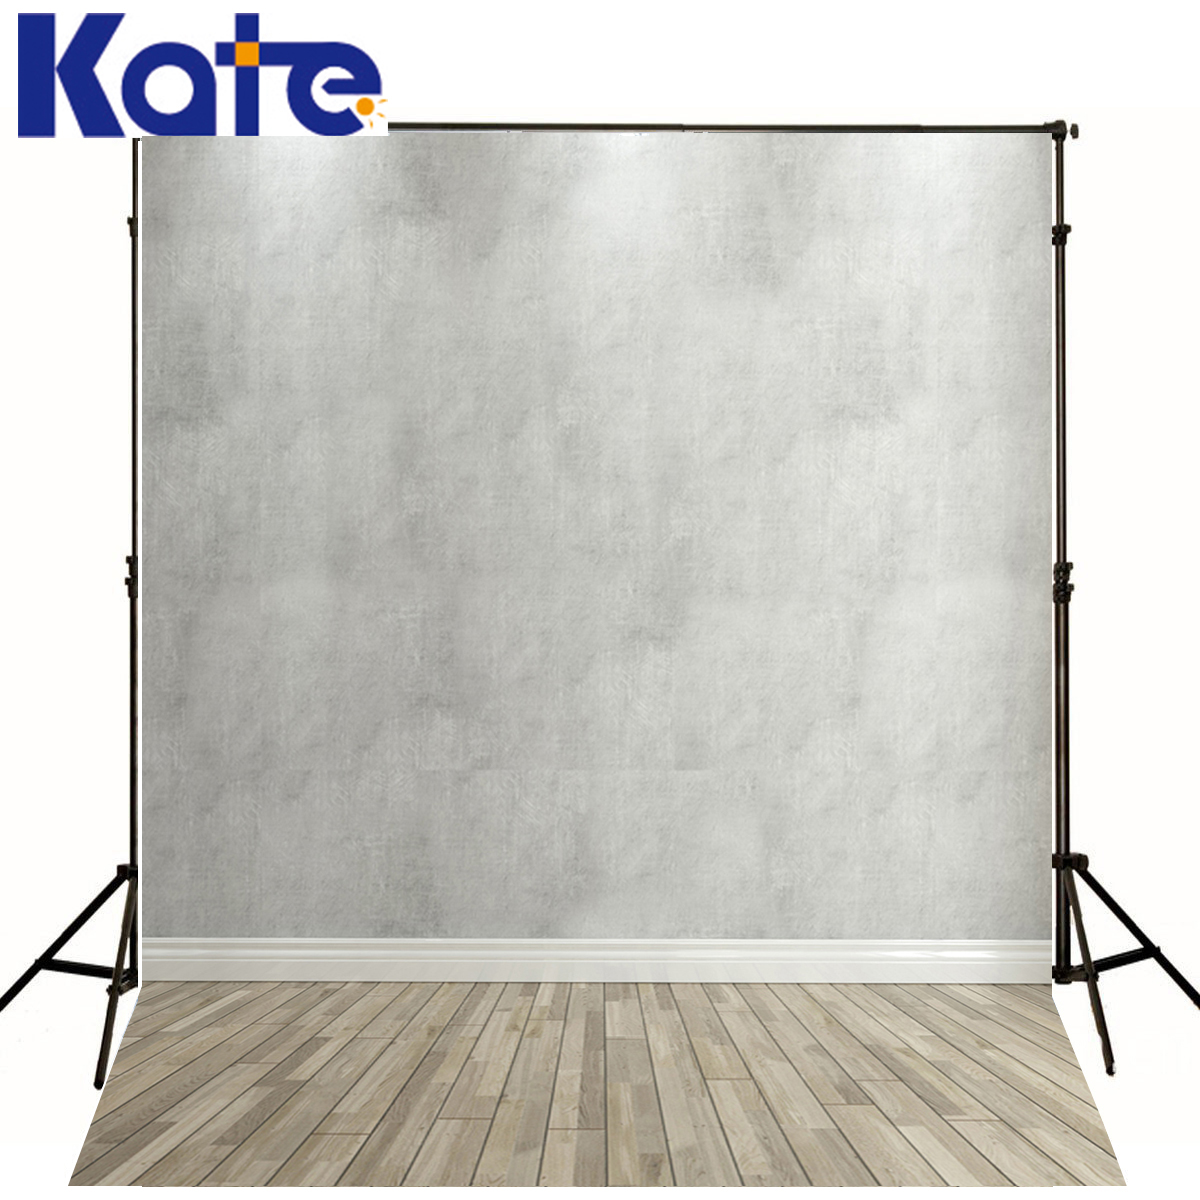 Kate Wood Background Photography Solid White Wall Backdrop Photo Wood Floor Photocall Backgrounds For Photo Studio J01676 kate 5x7ft blue graffiti planks backdrop colorful surfboards beach background children summer travel backdrop for photo studio